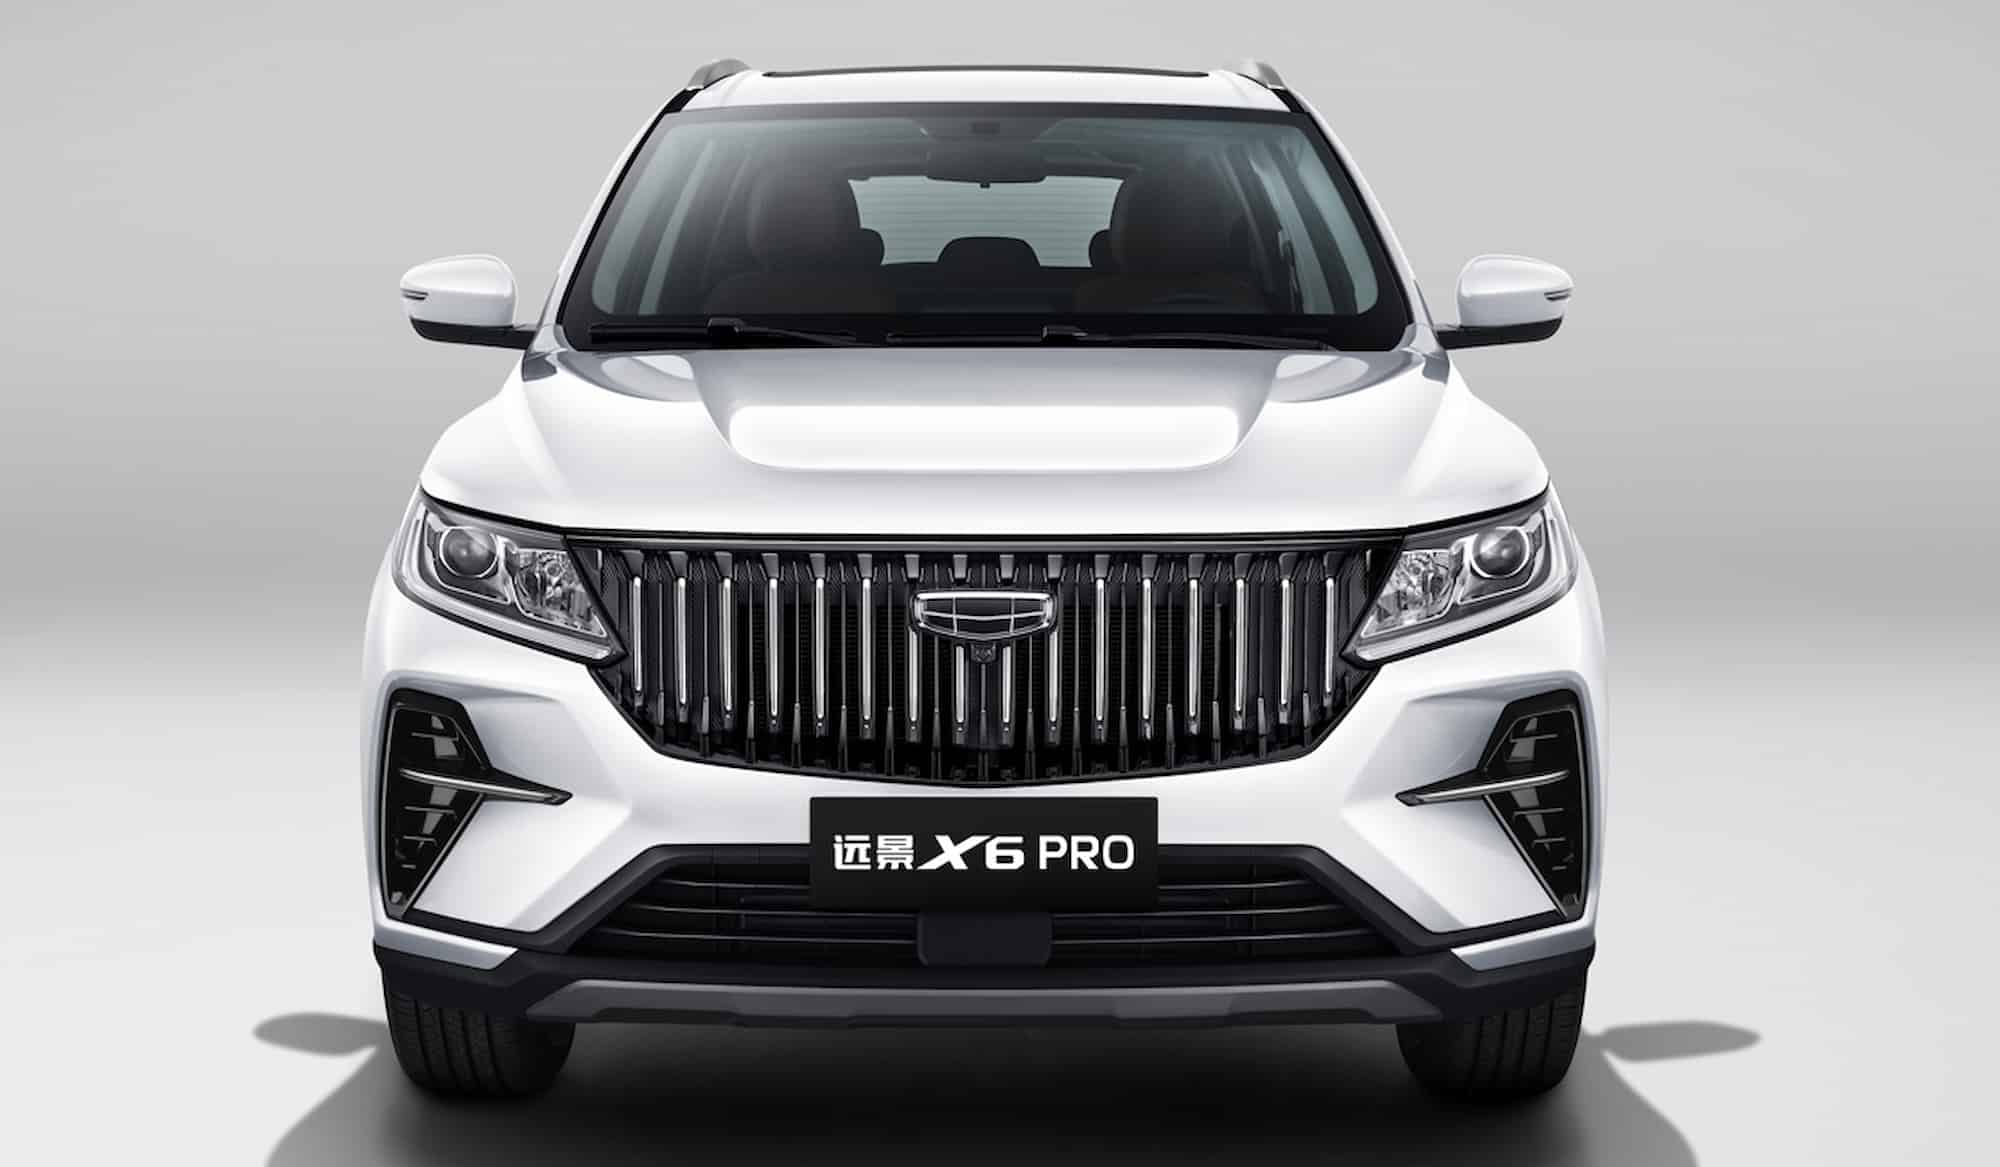 geely vision x6 pro4